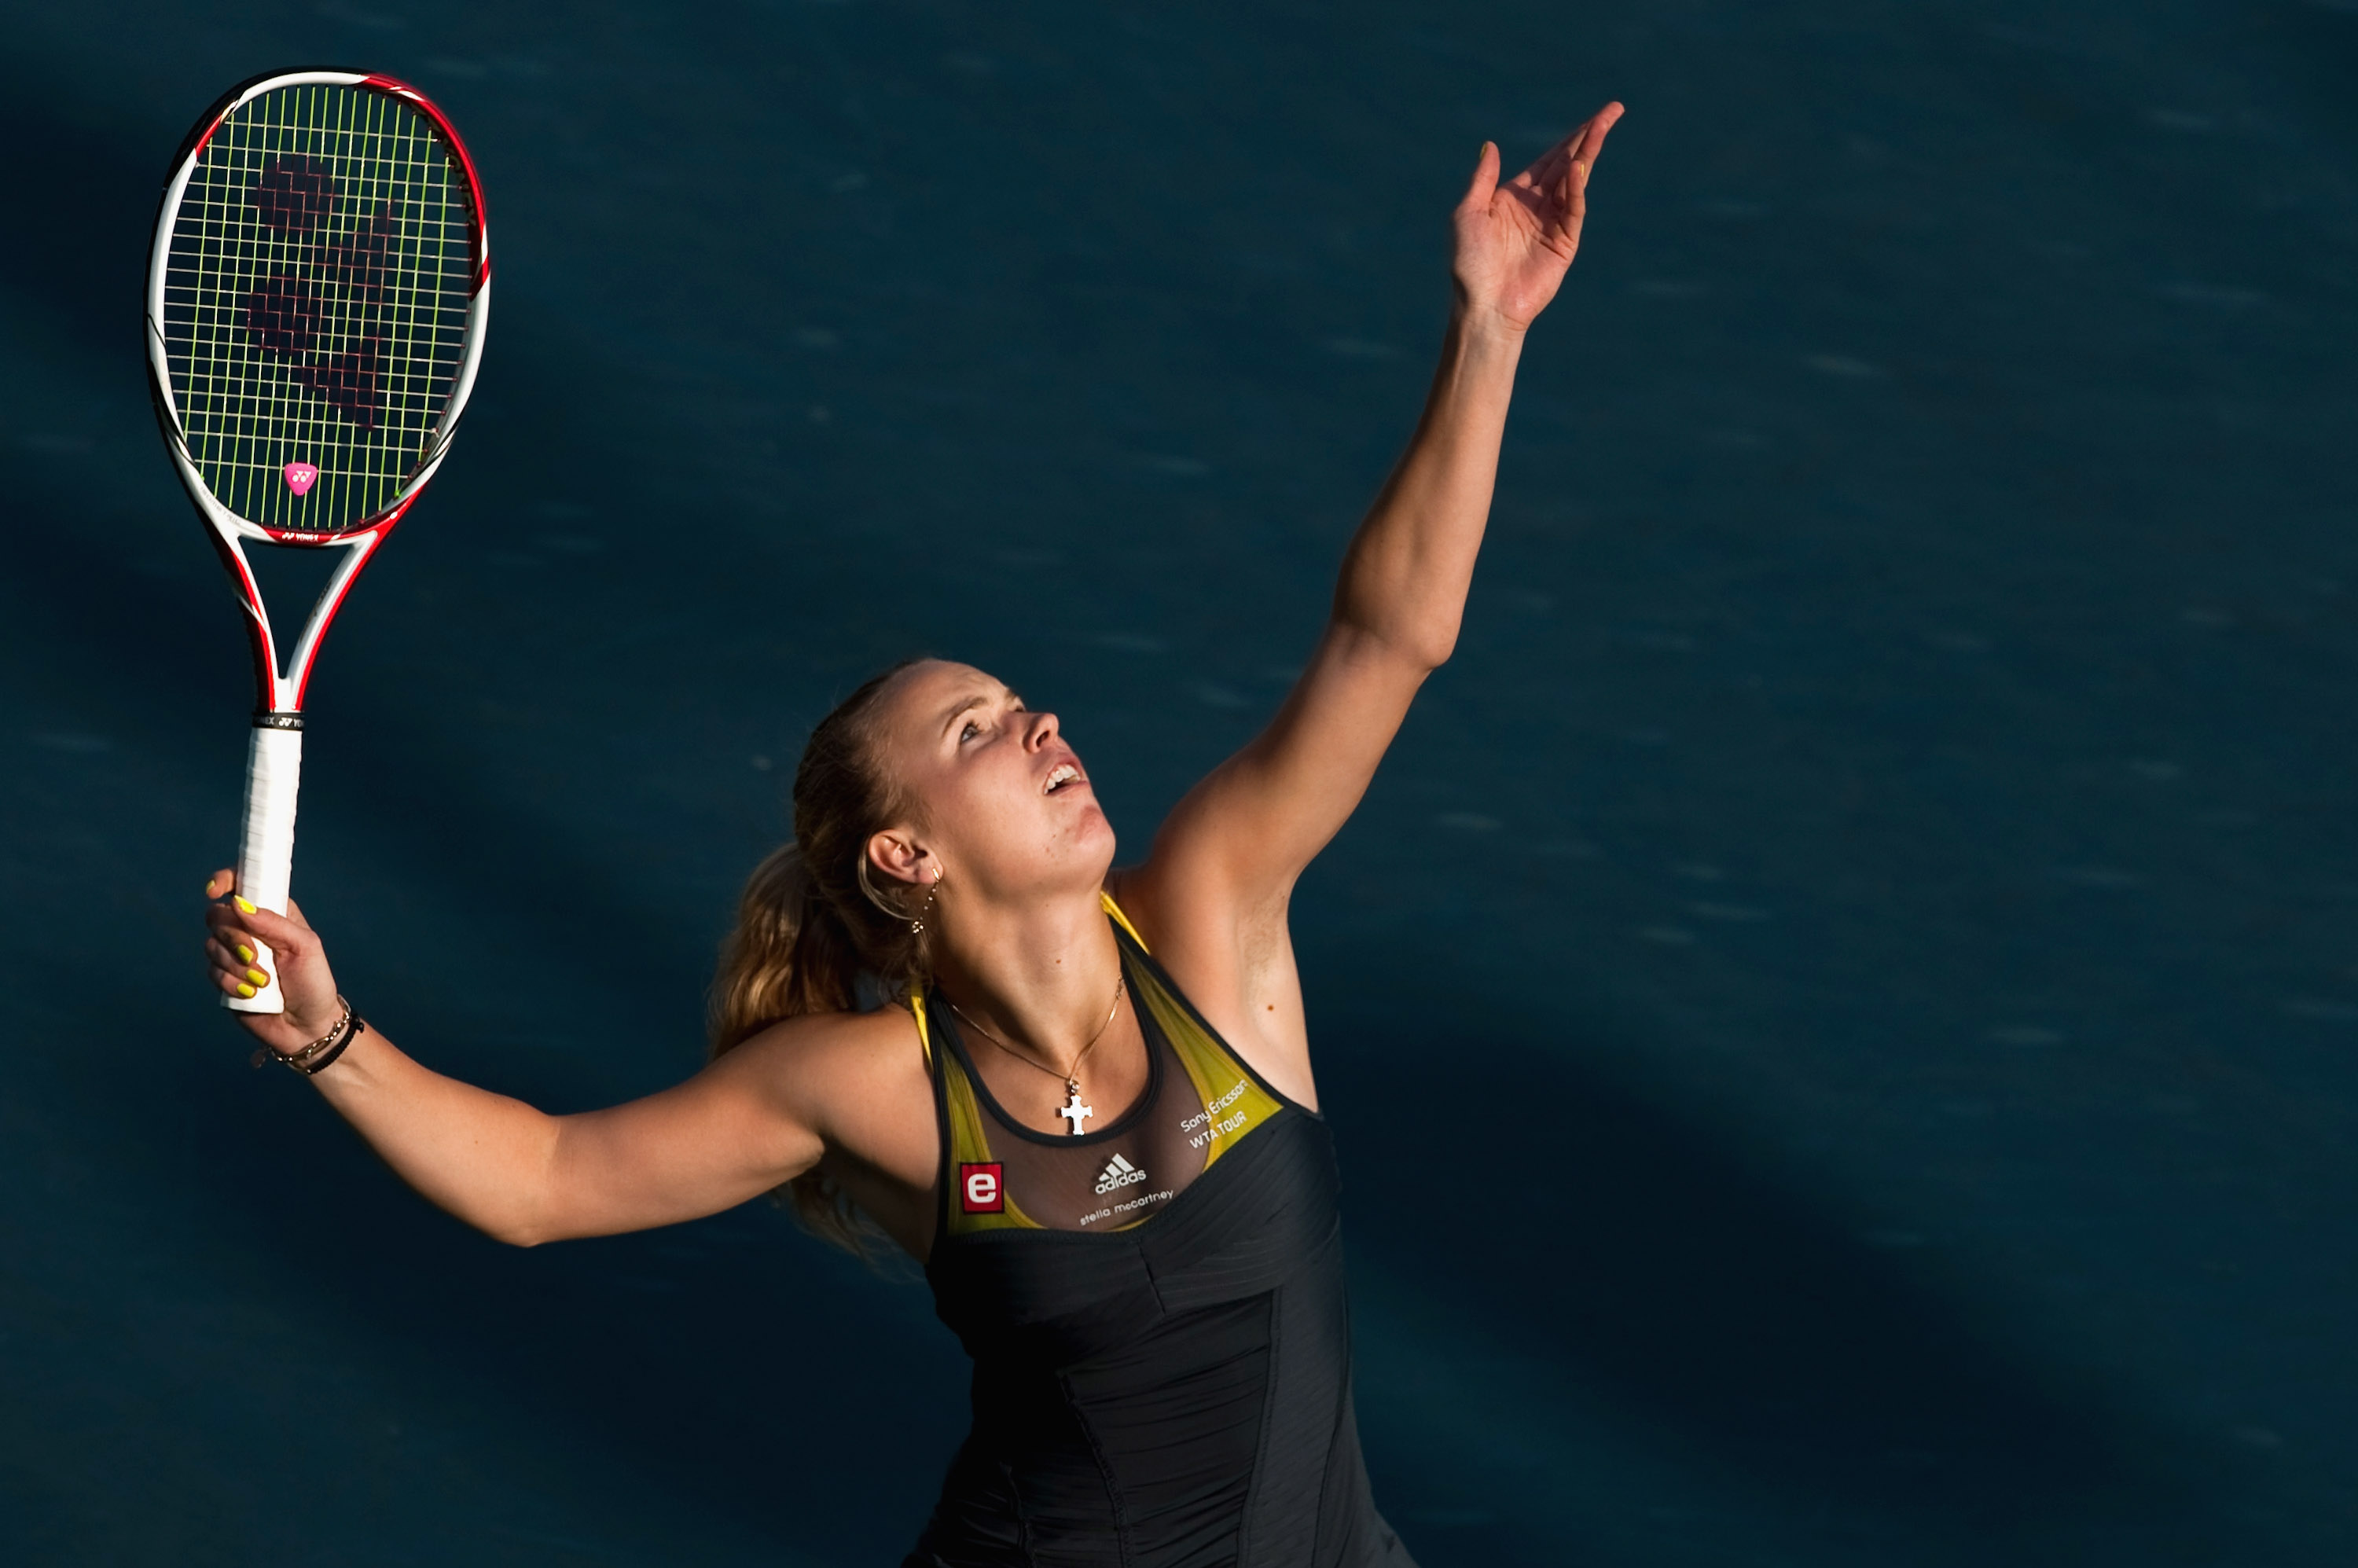 HONG KONG - JANUARY 08:  Caroline Wozniacki of Denmark serves during her match against Vera Zvonareva of Russia during day four of the Hong Kong Tennis Classic 2011 on January 8, 2011 in Hong Kong, China.  (Photo by Victor Fraile/Getty Images)